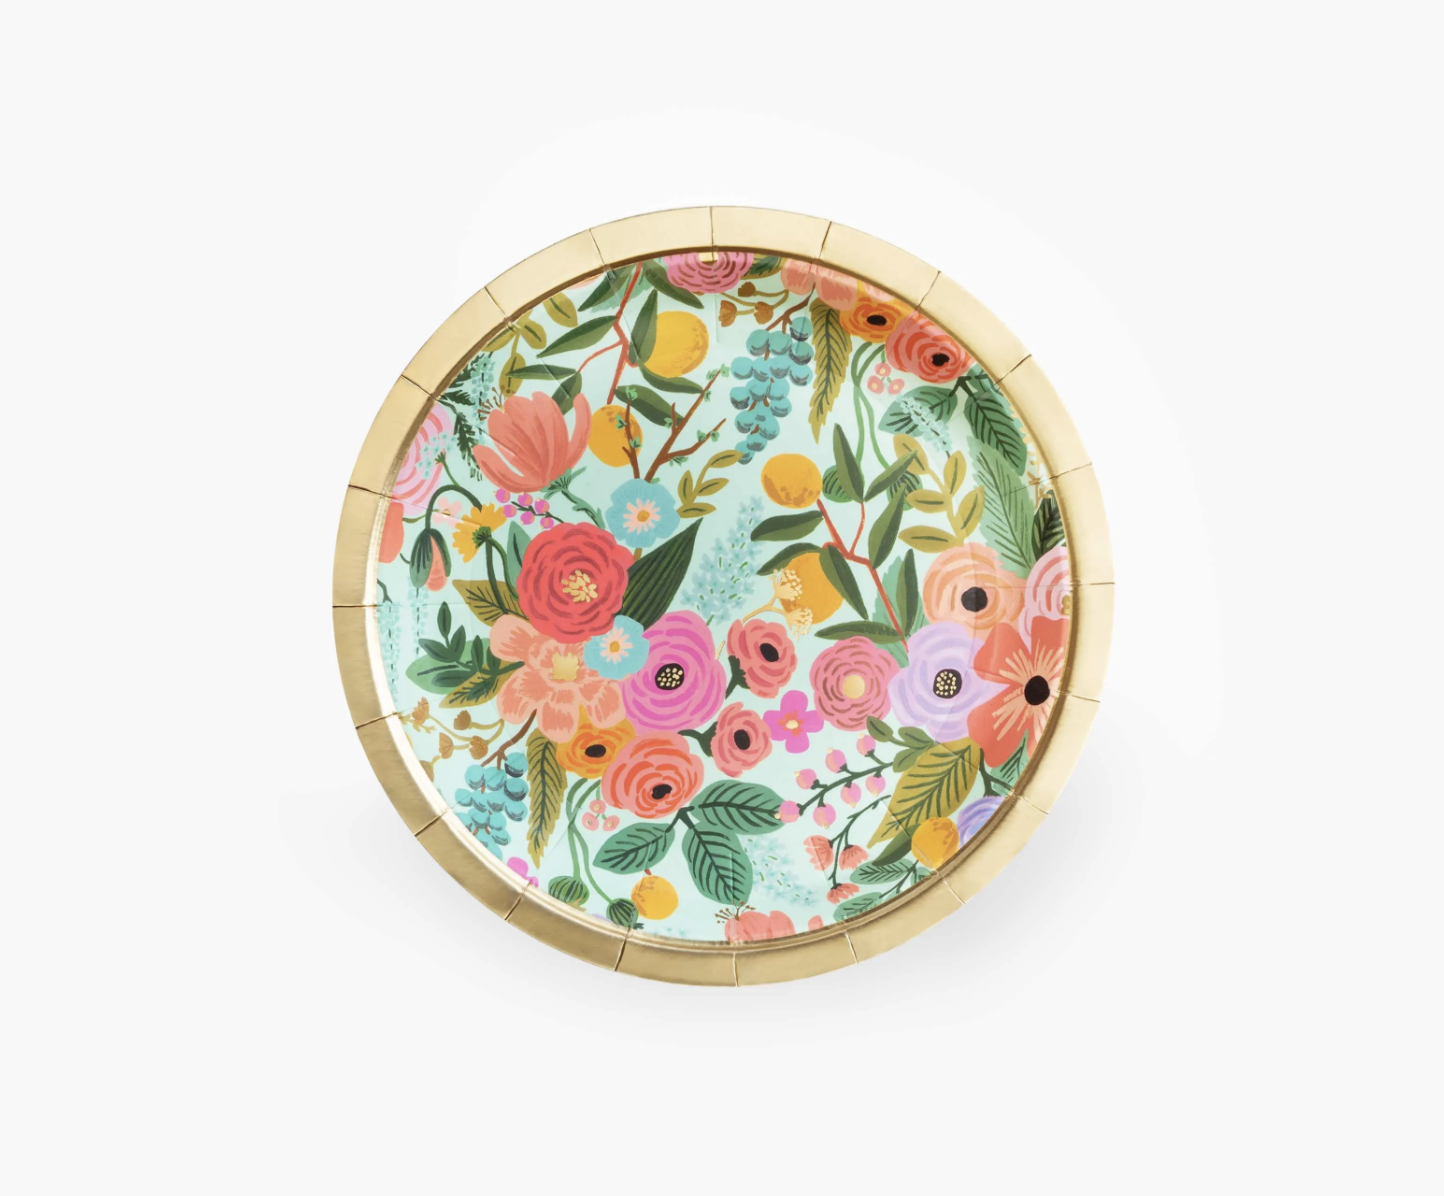 Haustsalg 40% - RIFLE - Garden Party plates, small